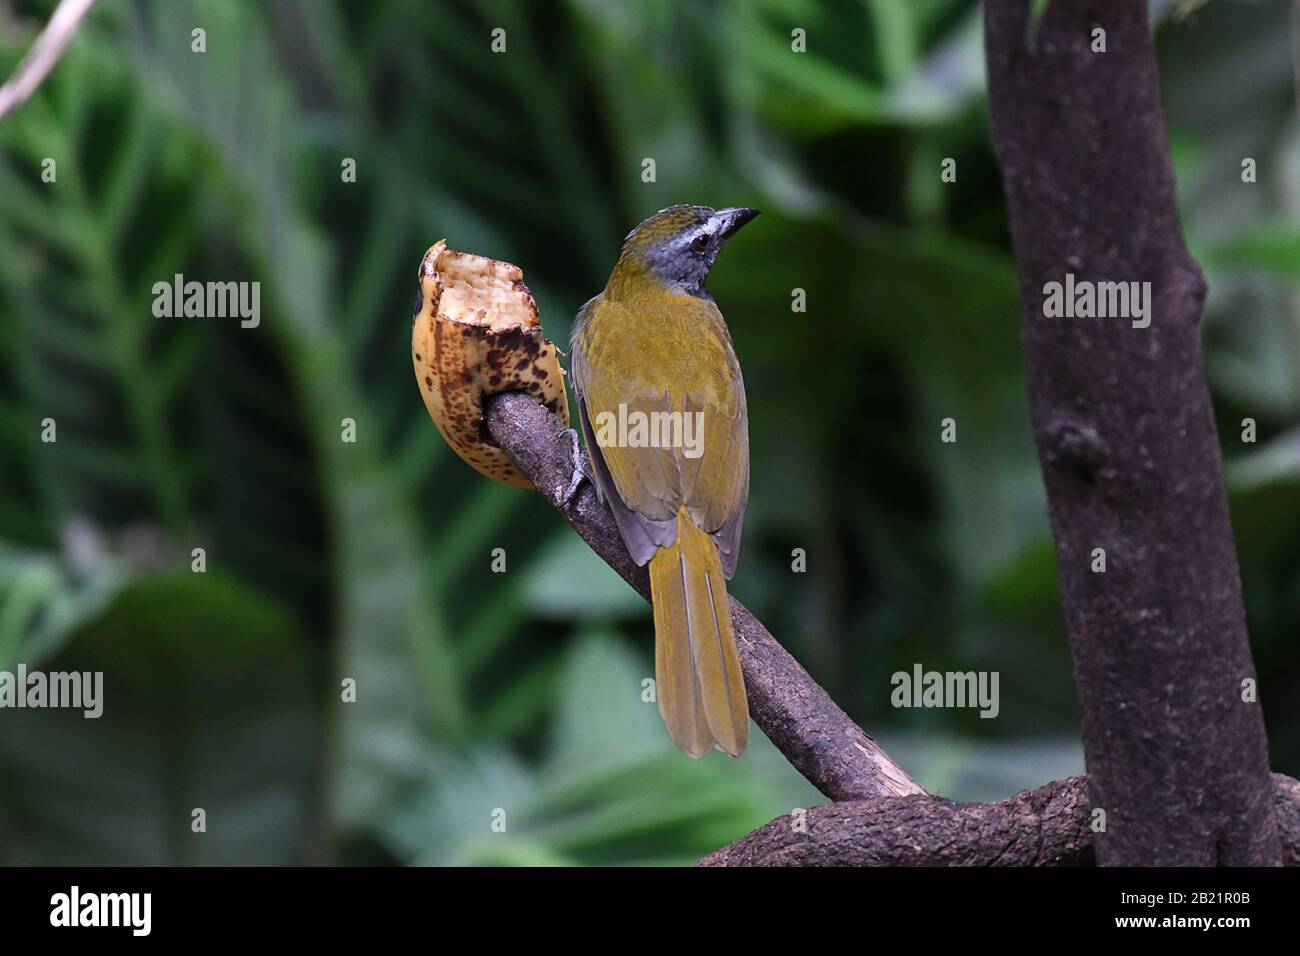 Black-headed Saltator perched on a branch Stock Photo